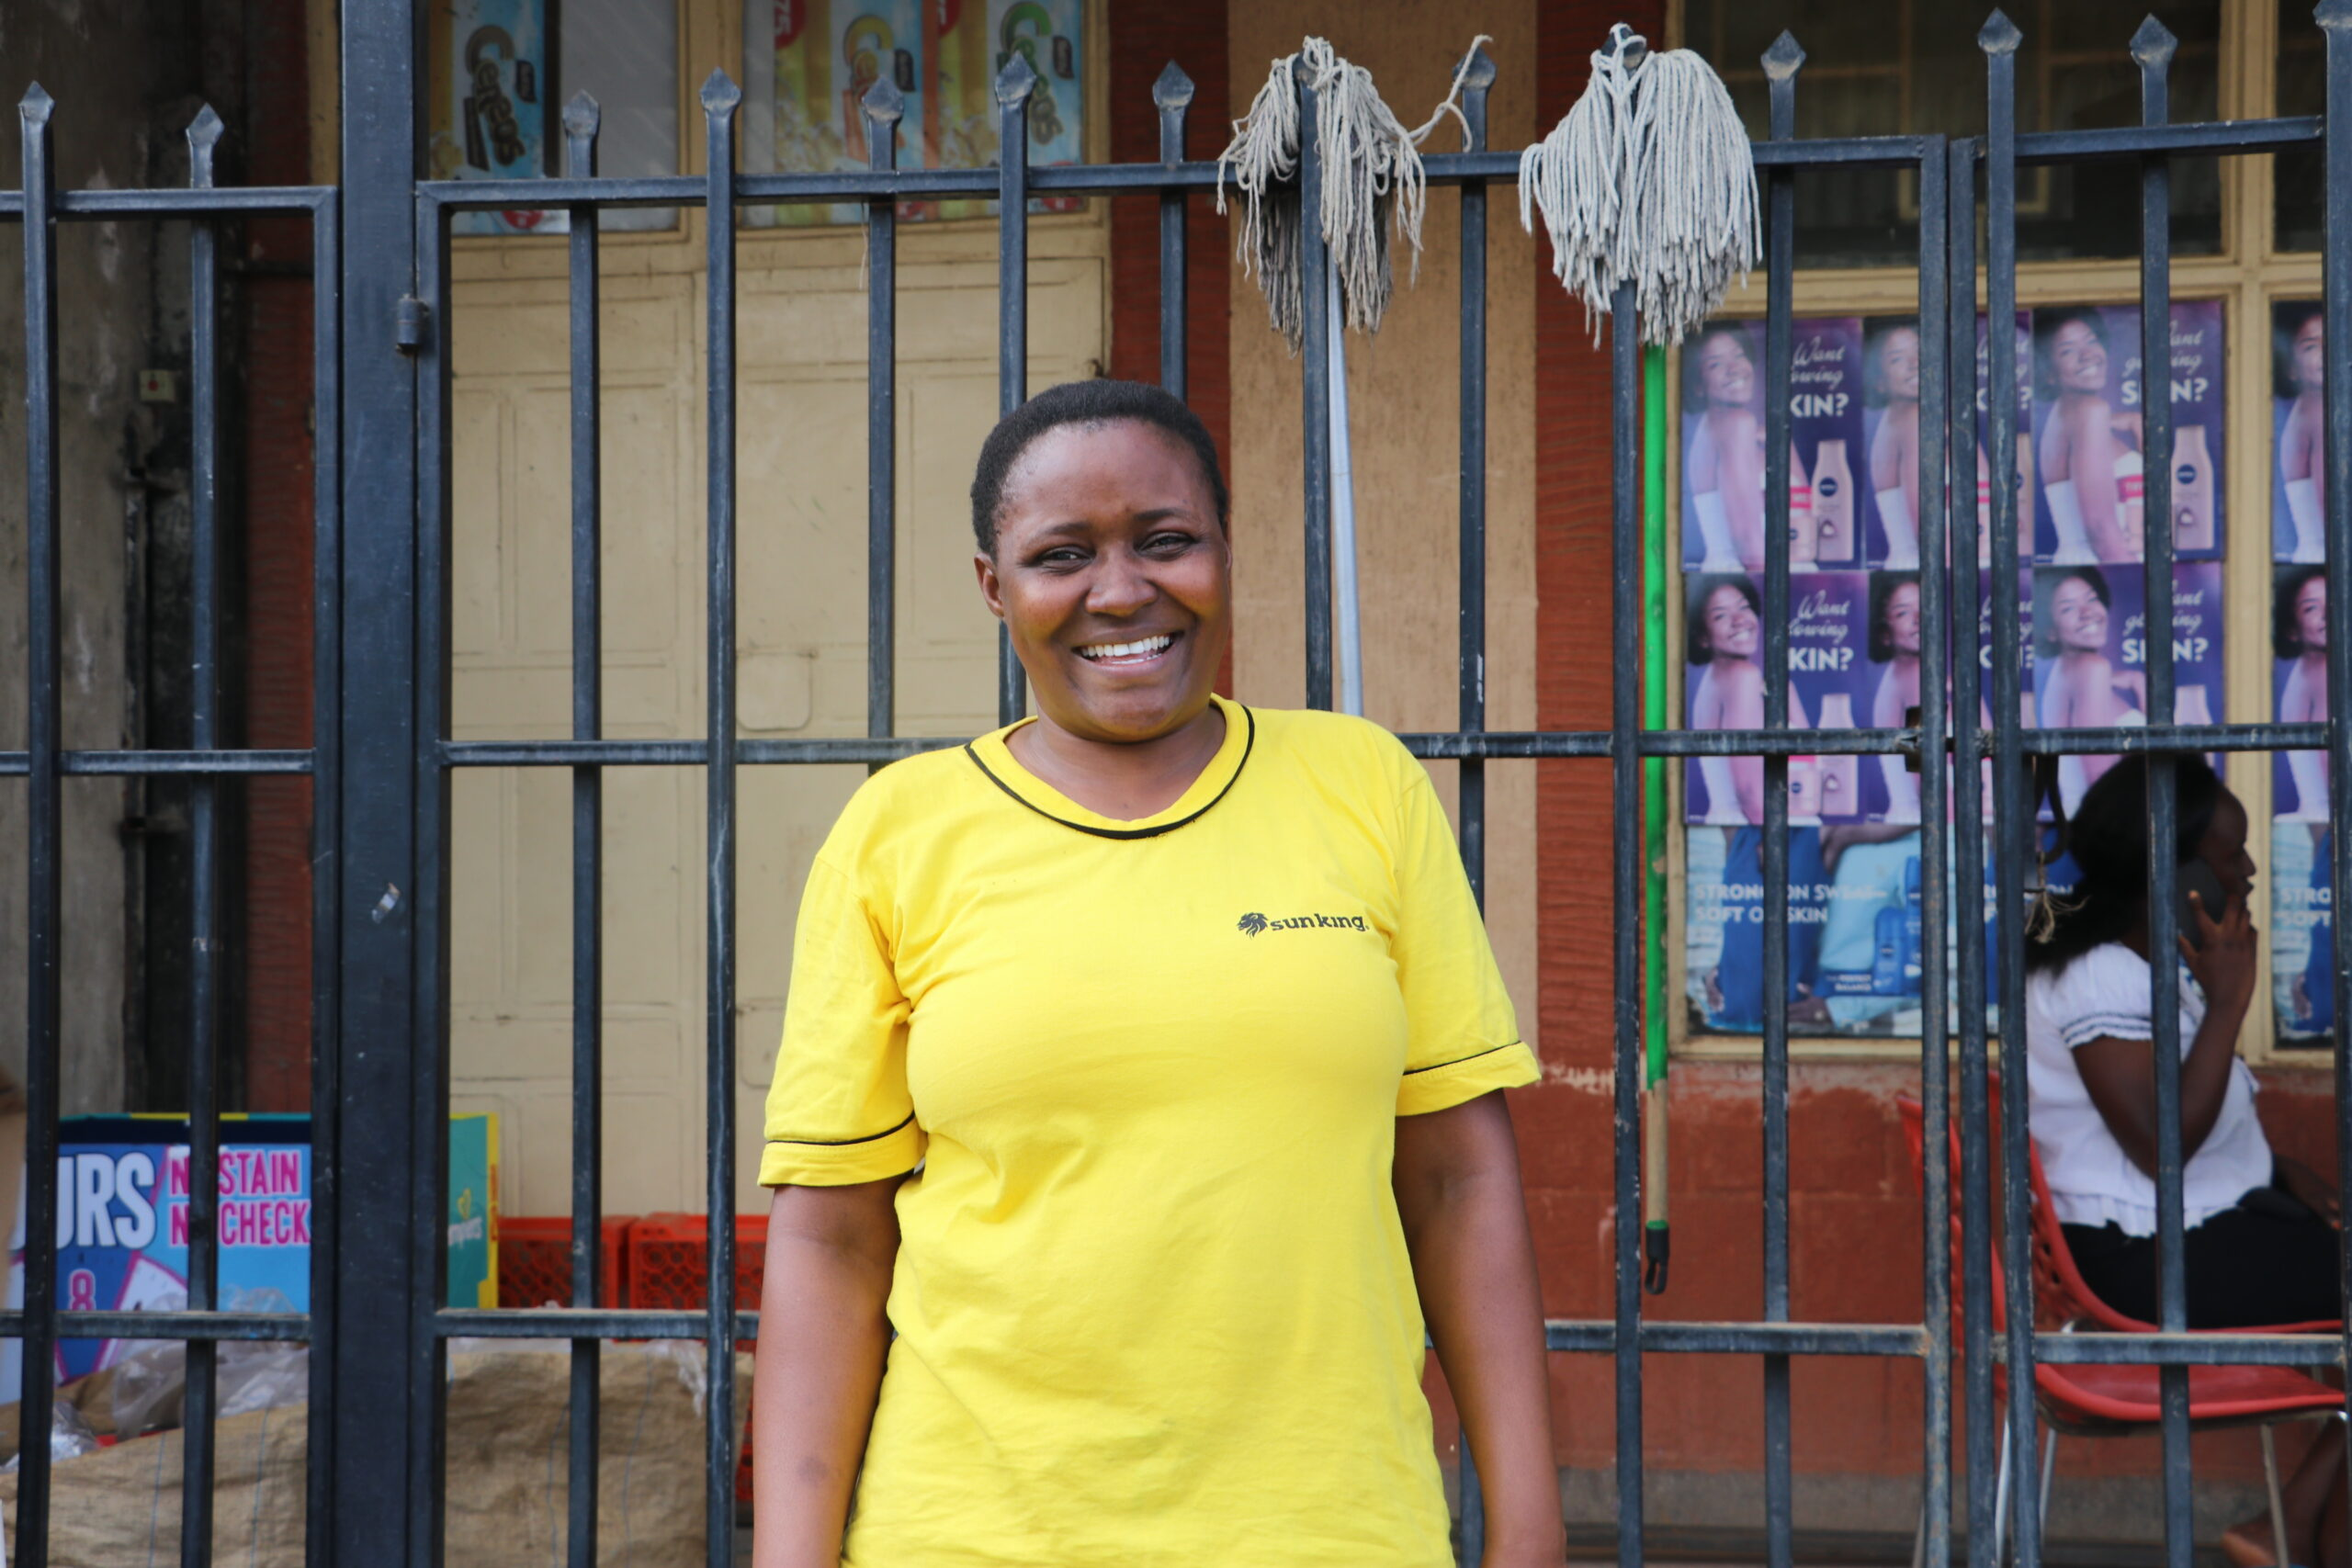 Rebecca is promoting productive uses of energy to enhance livelihoods in her community